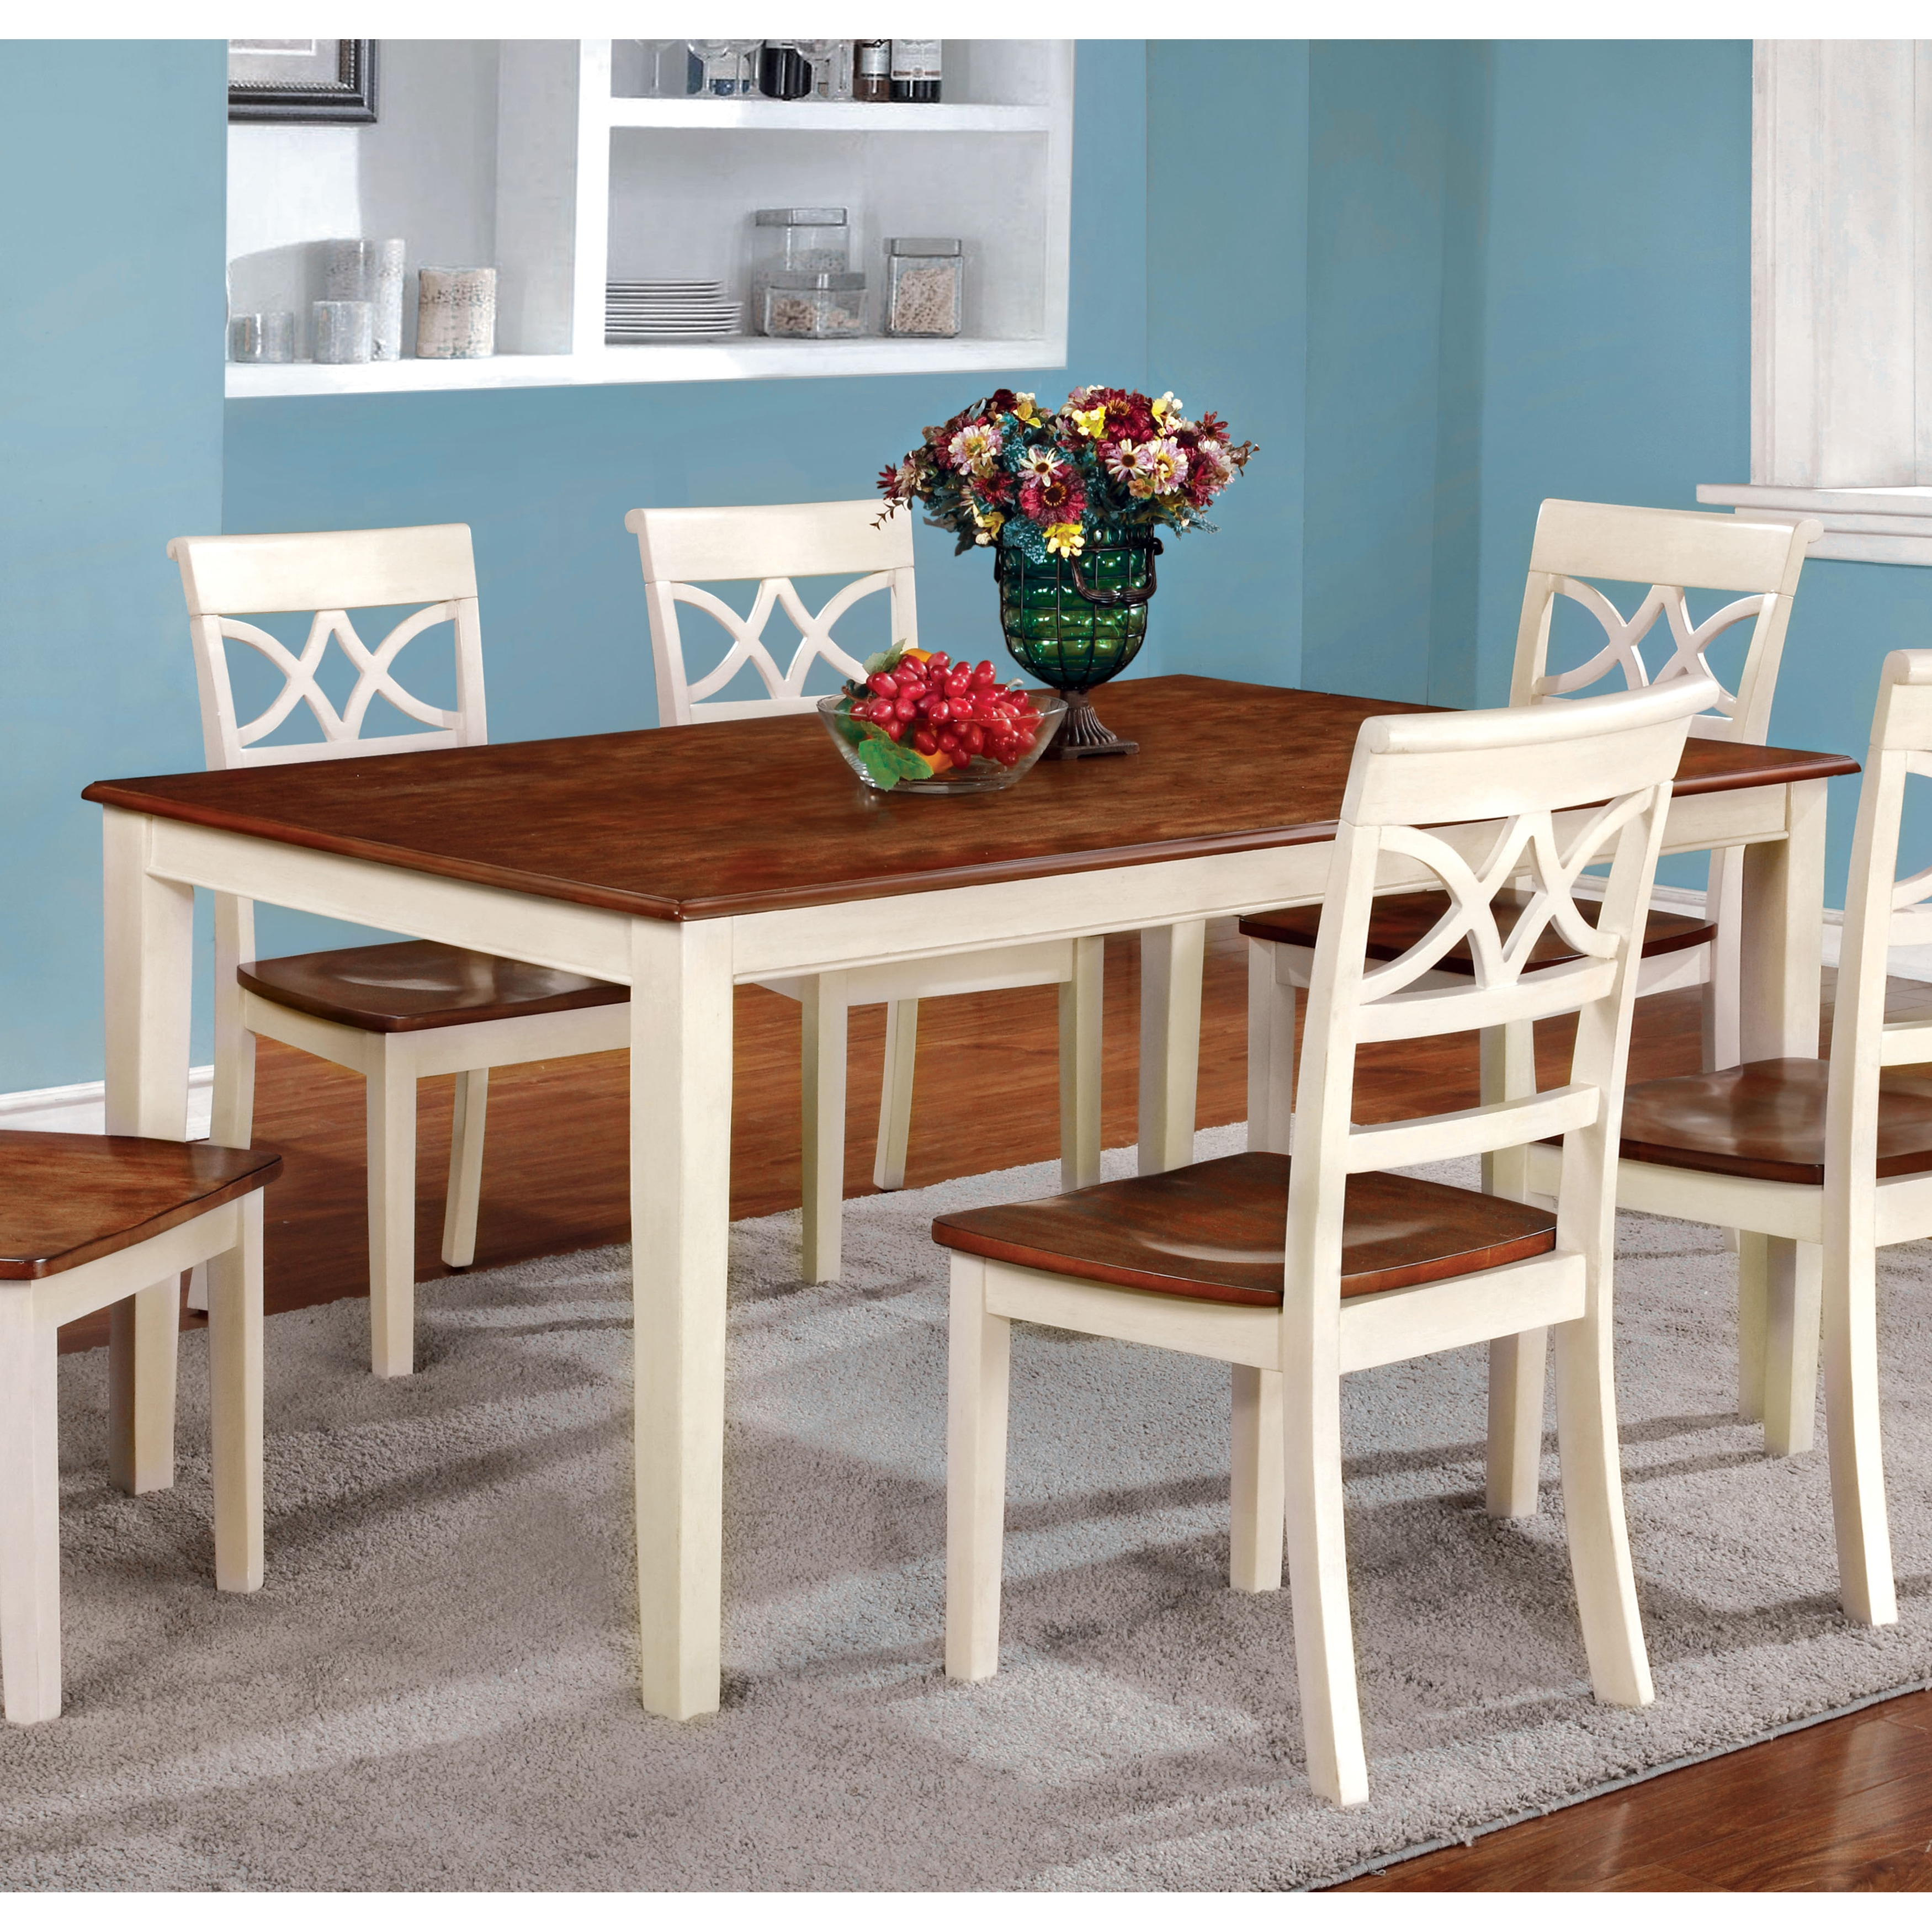 Surprising The Gray Barn Epona Two Tone Dining Table Interior Design Ideas Oxytryabchikinfo